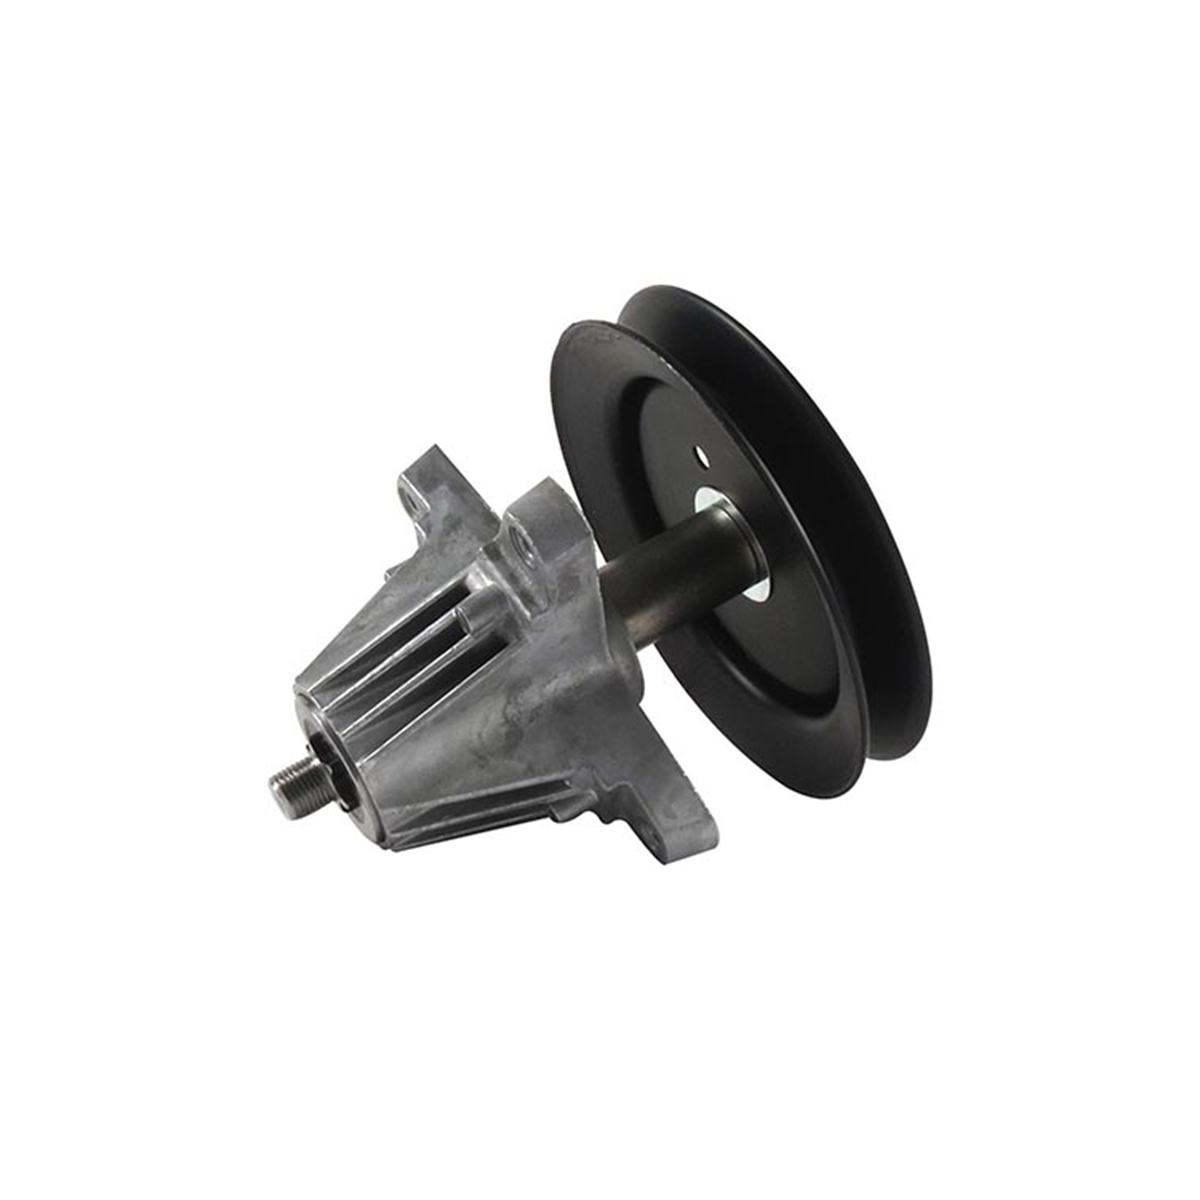 Pulley & Spindle Assembly 918-04822B